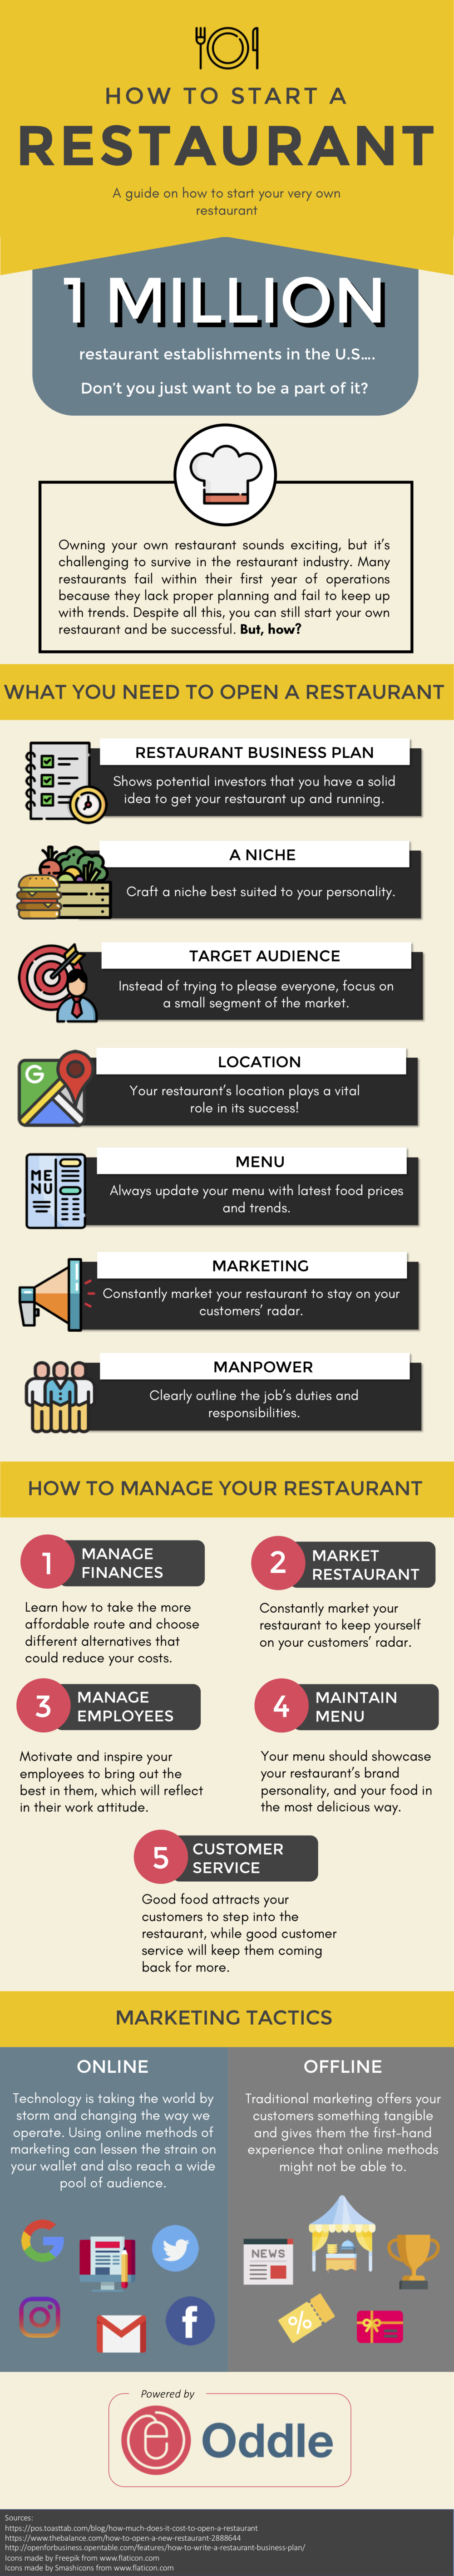 HOW TO START A RESTAURANT.png